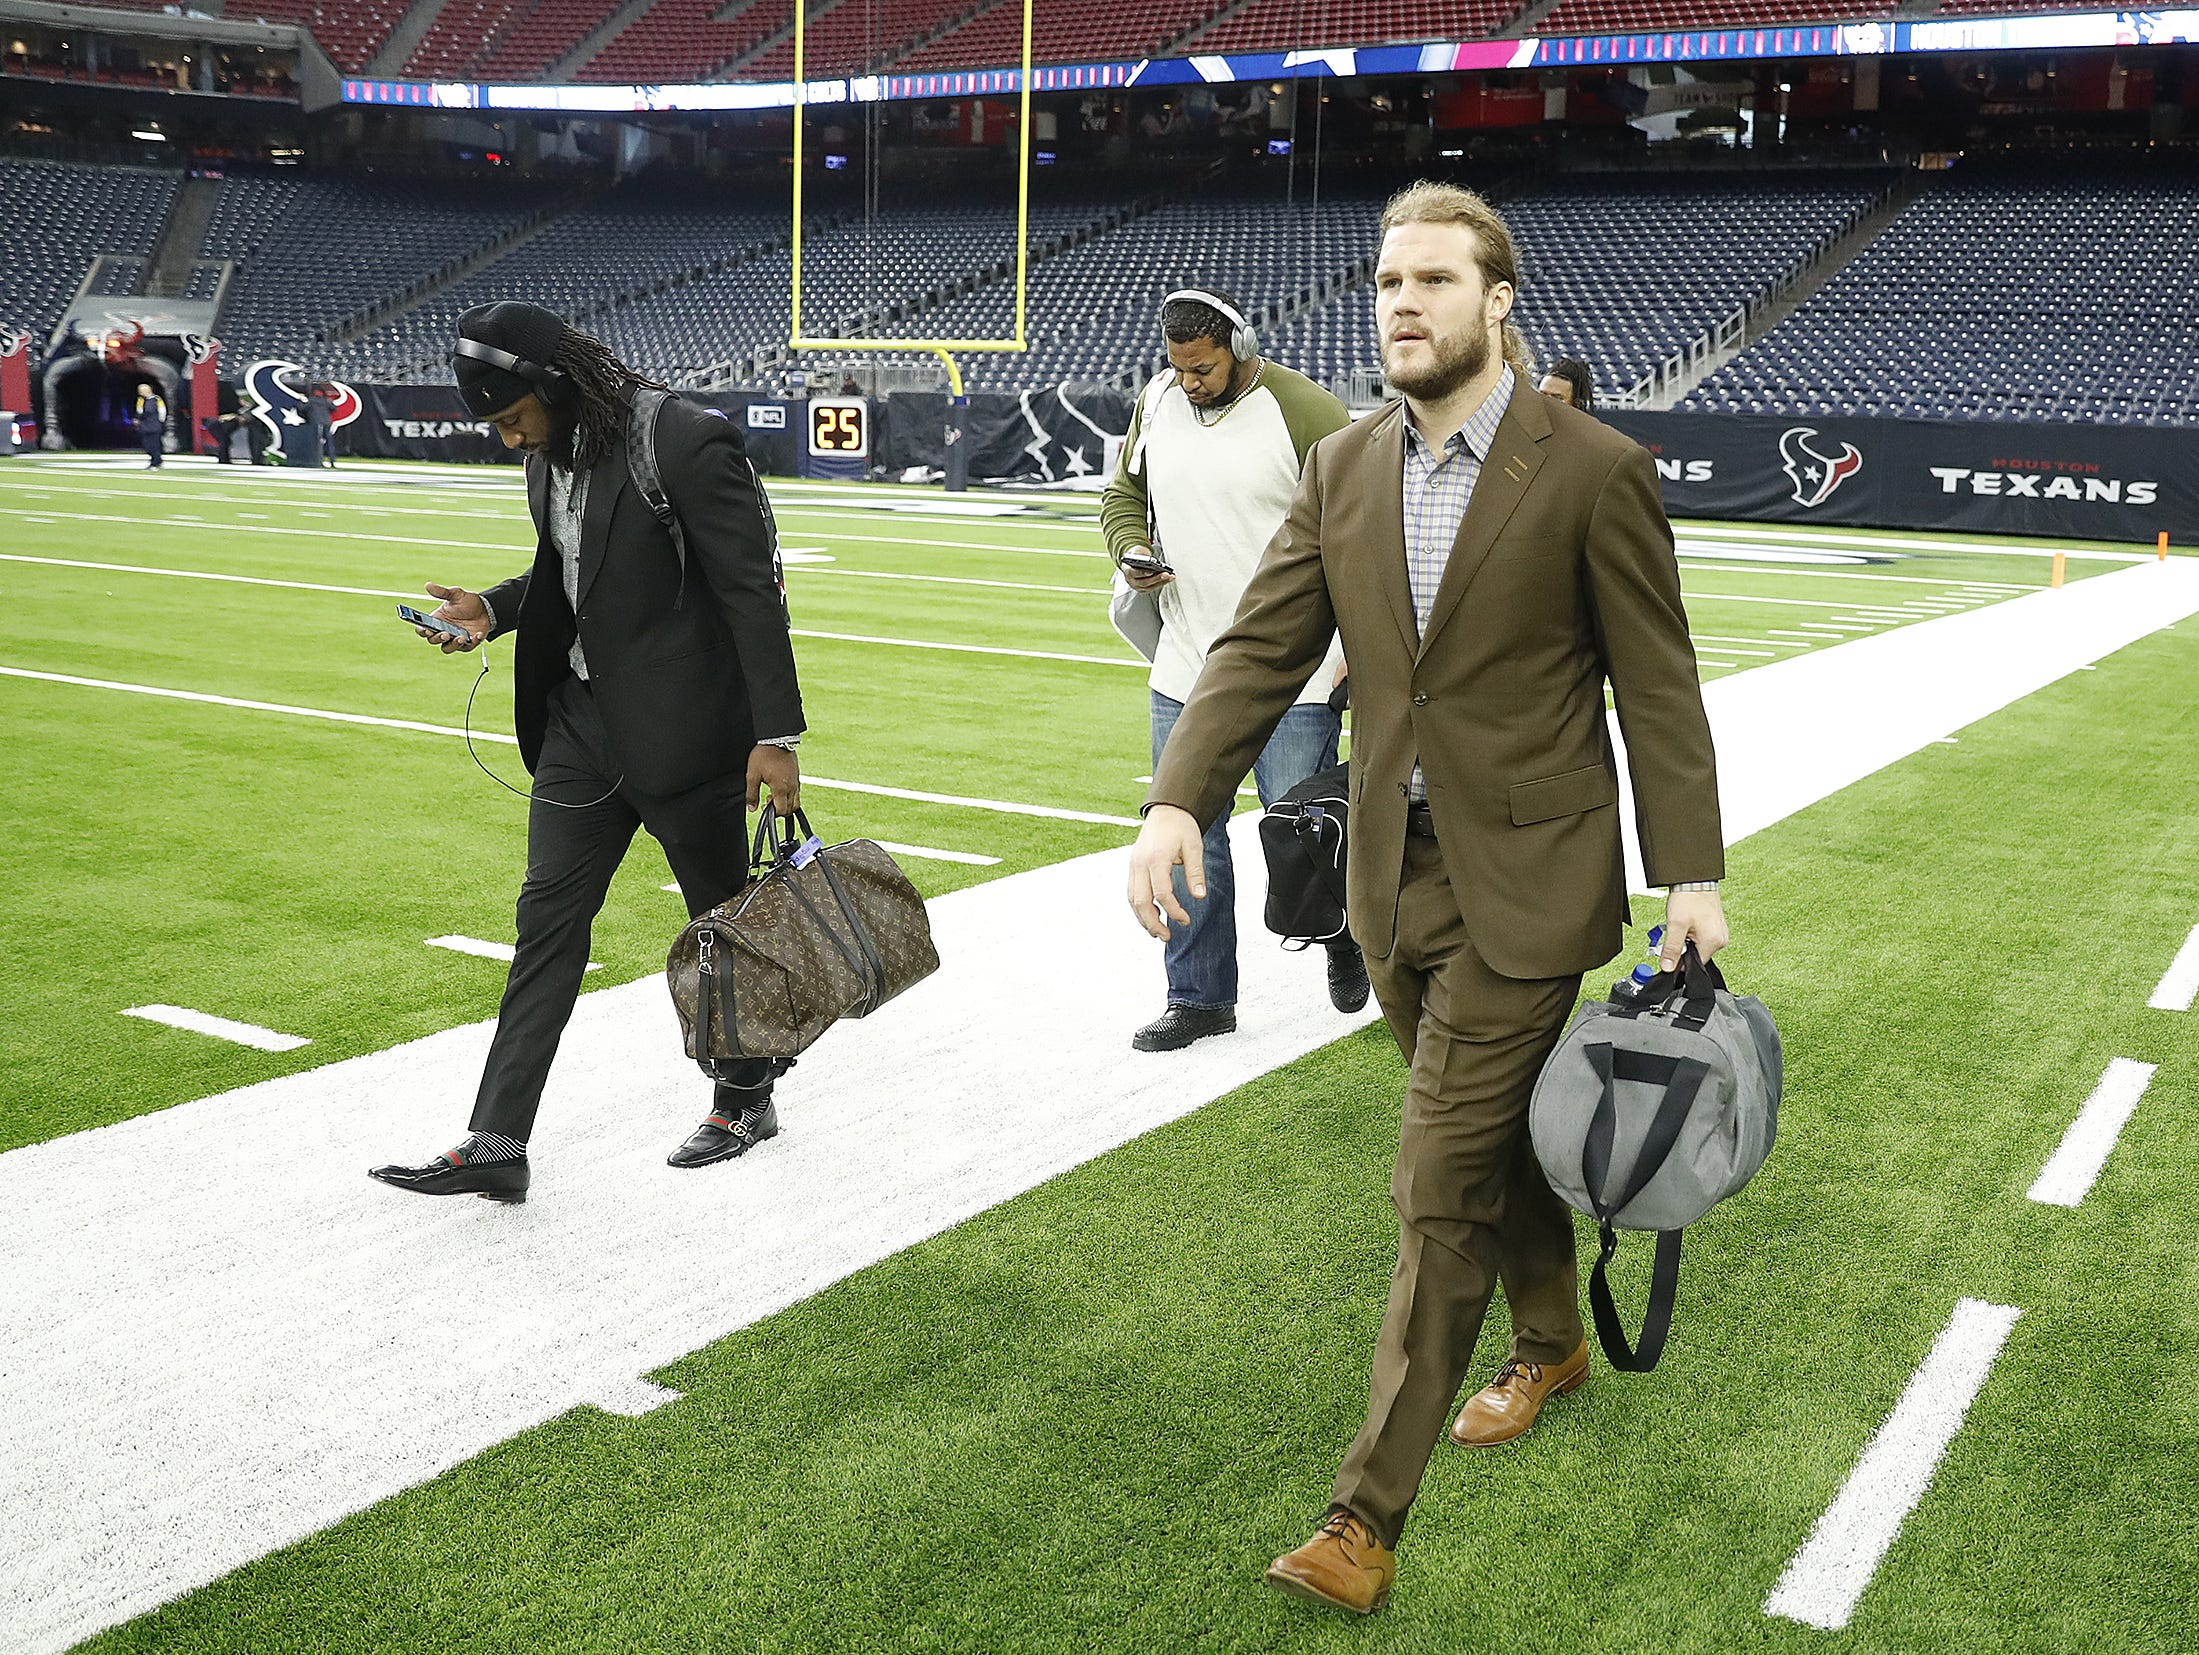 Indianapolis Colts players arrive before the start of their game against the Houston Texans at NRG Stadium in Houston, TX., on Sunday, Dec. 9, 2018.